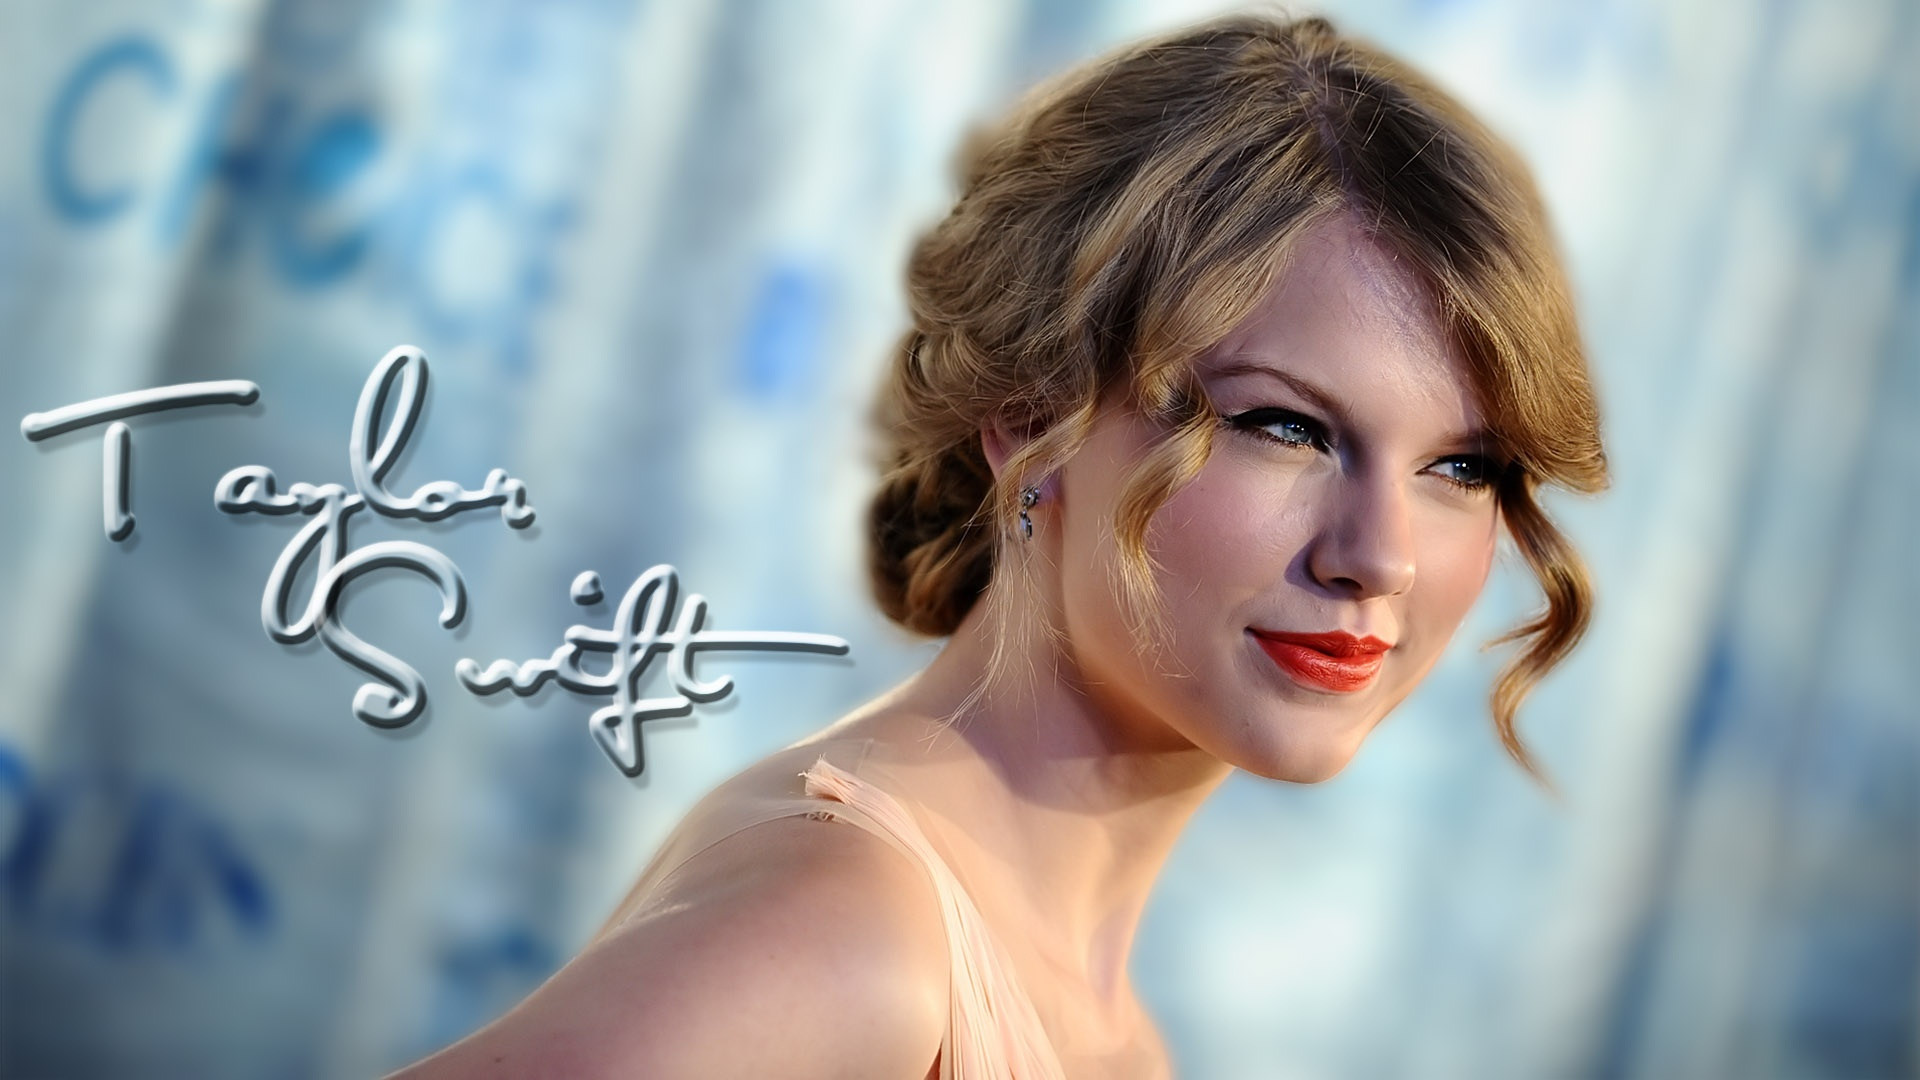 Lovely Taylor Wallpaper   Taylor Swift Wallpaper 26240296 1920x1080